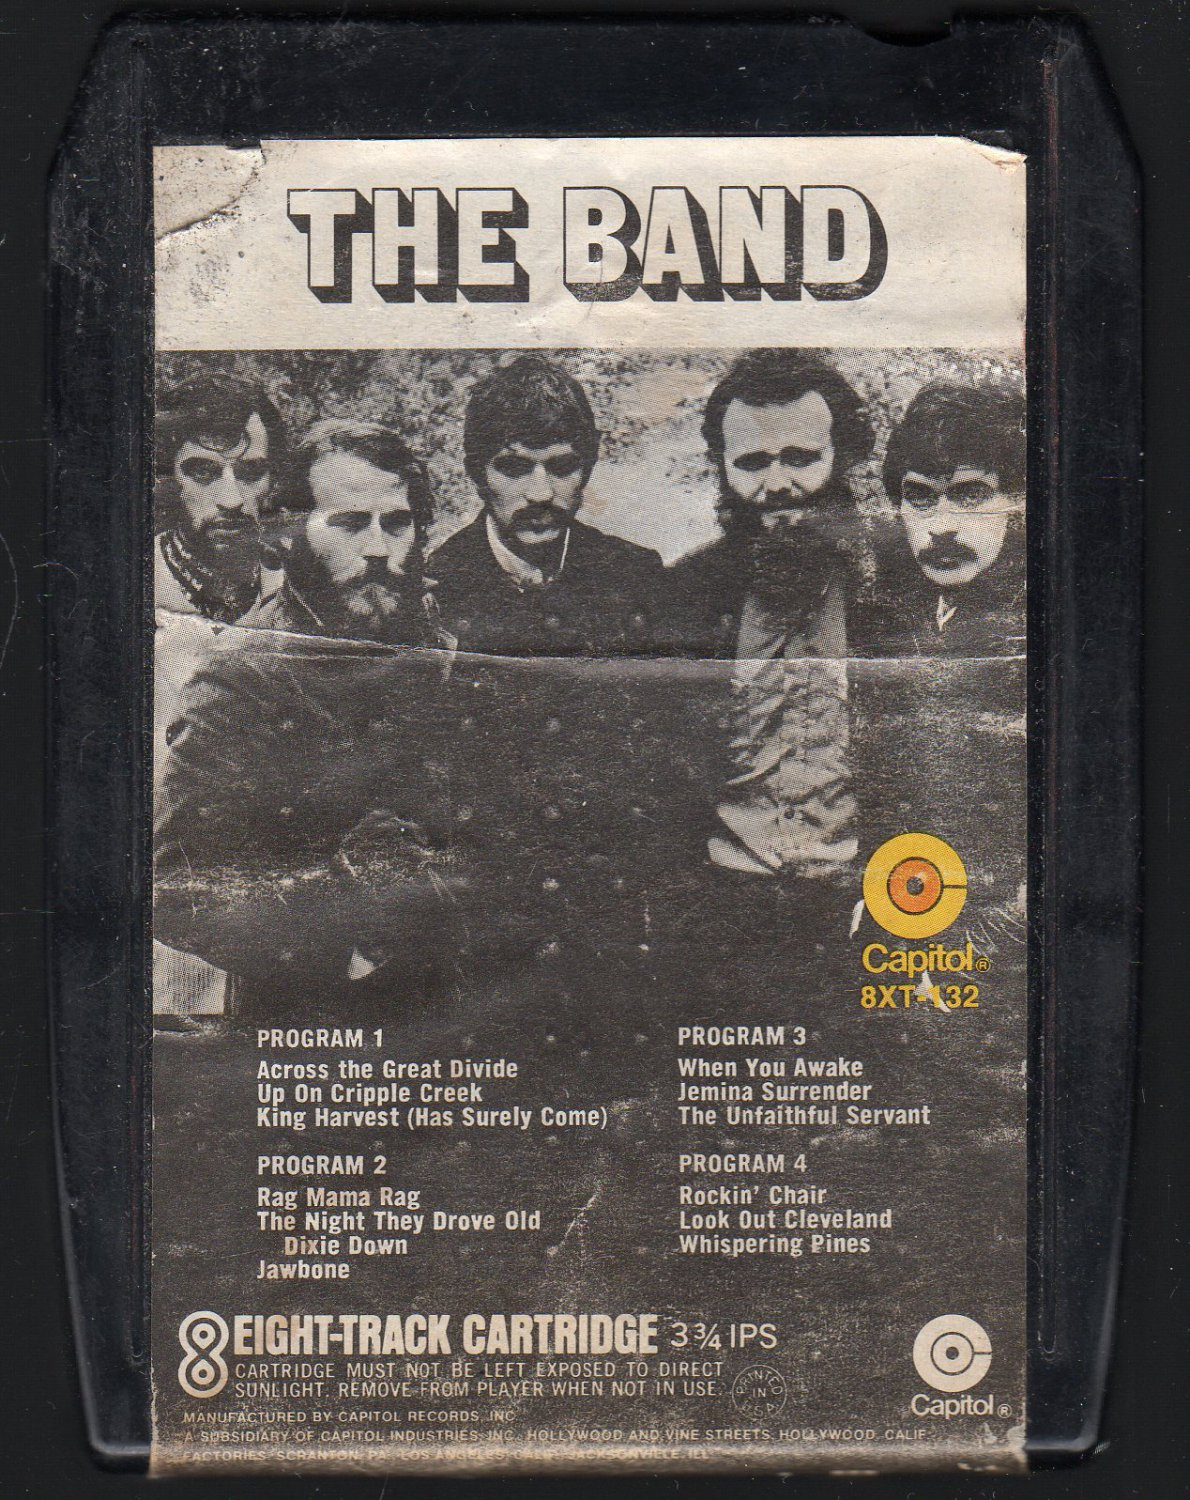 The Band - The Band 1969 CAPITOL A5 8-track tape